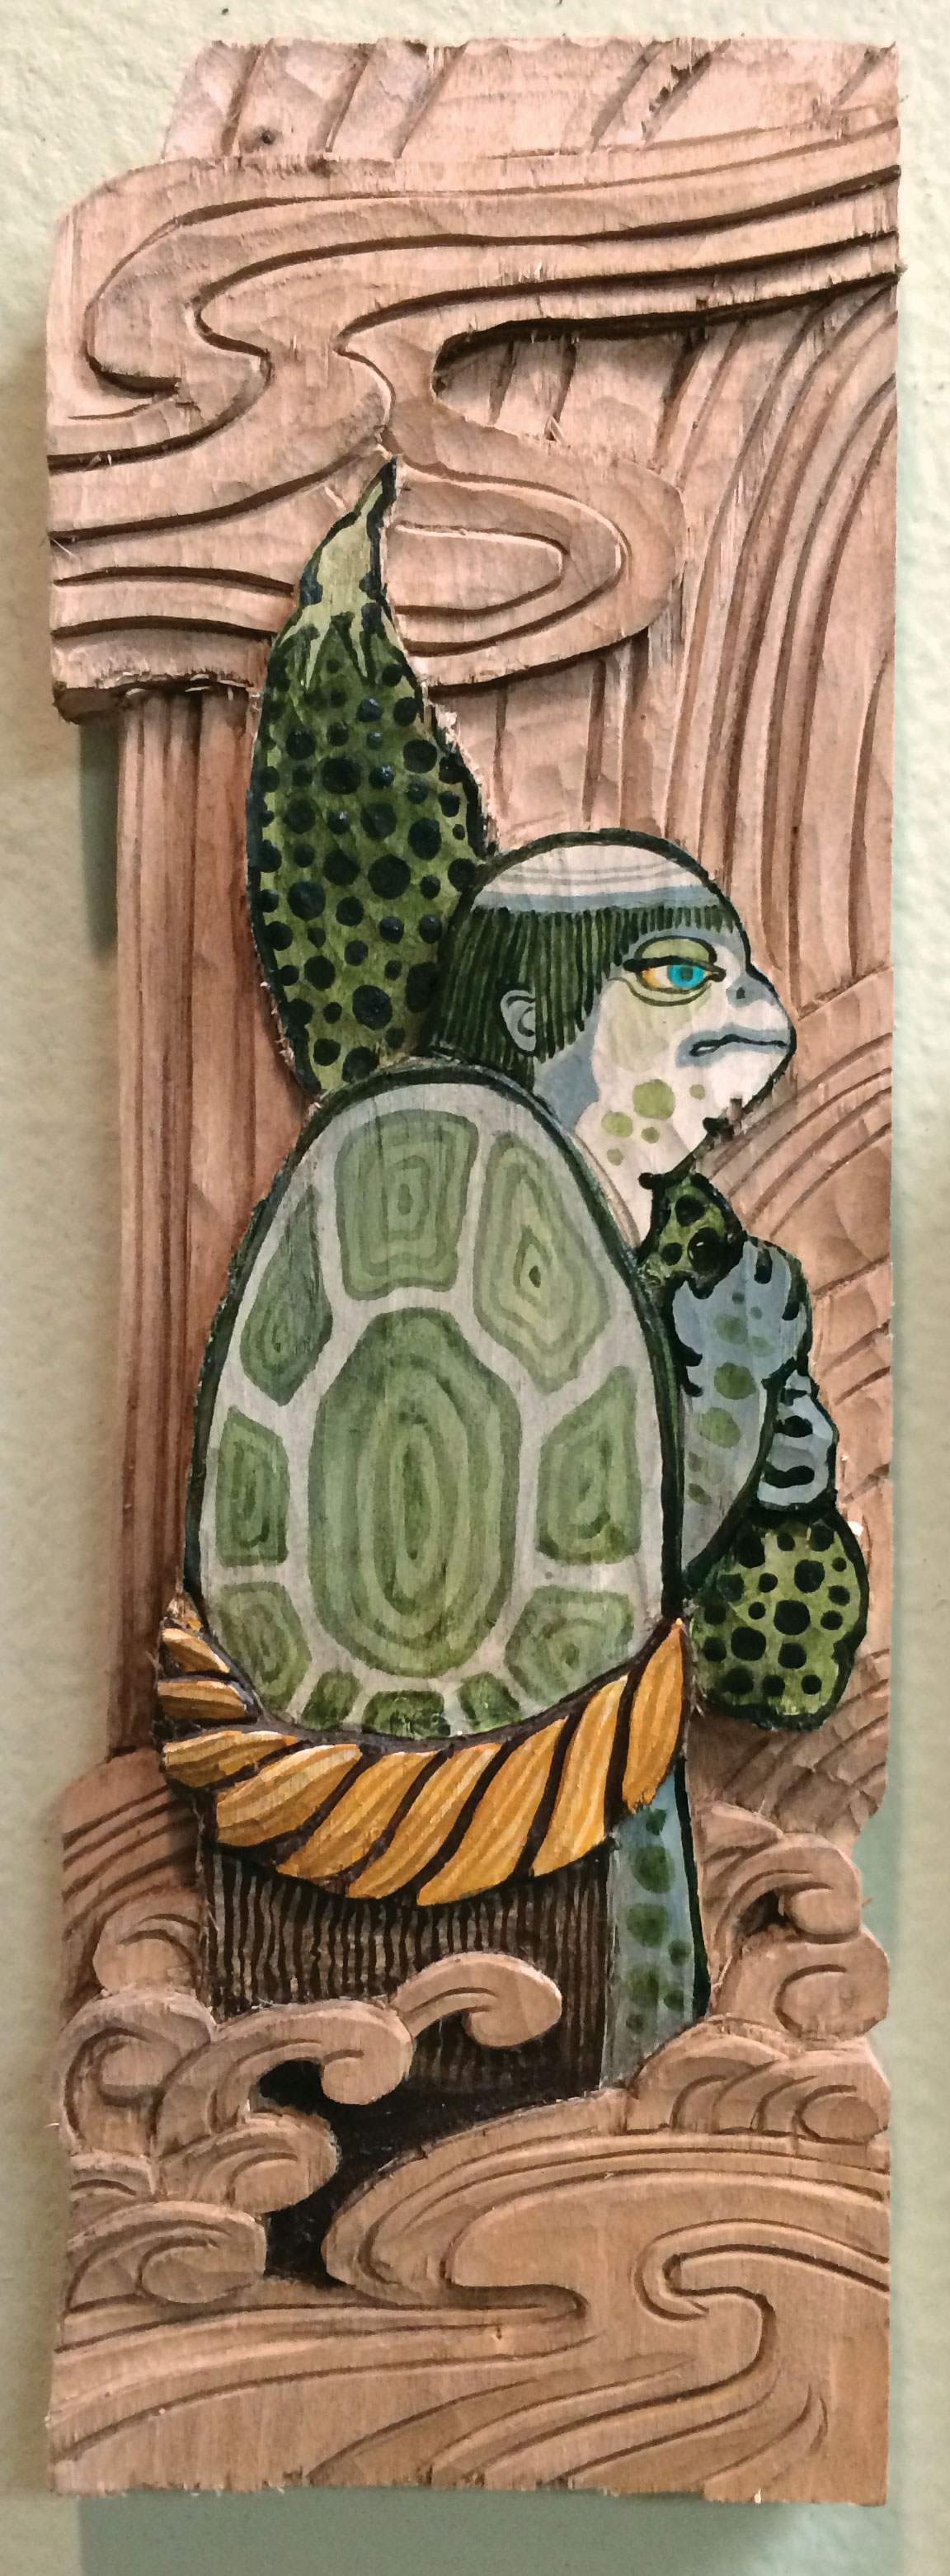 "Kappa brings dinner.  2014 - acrylic and hand carved wood. 9"" x 3""."